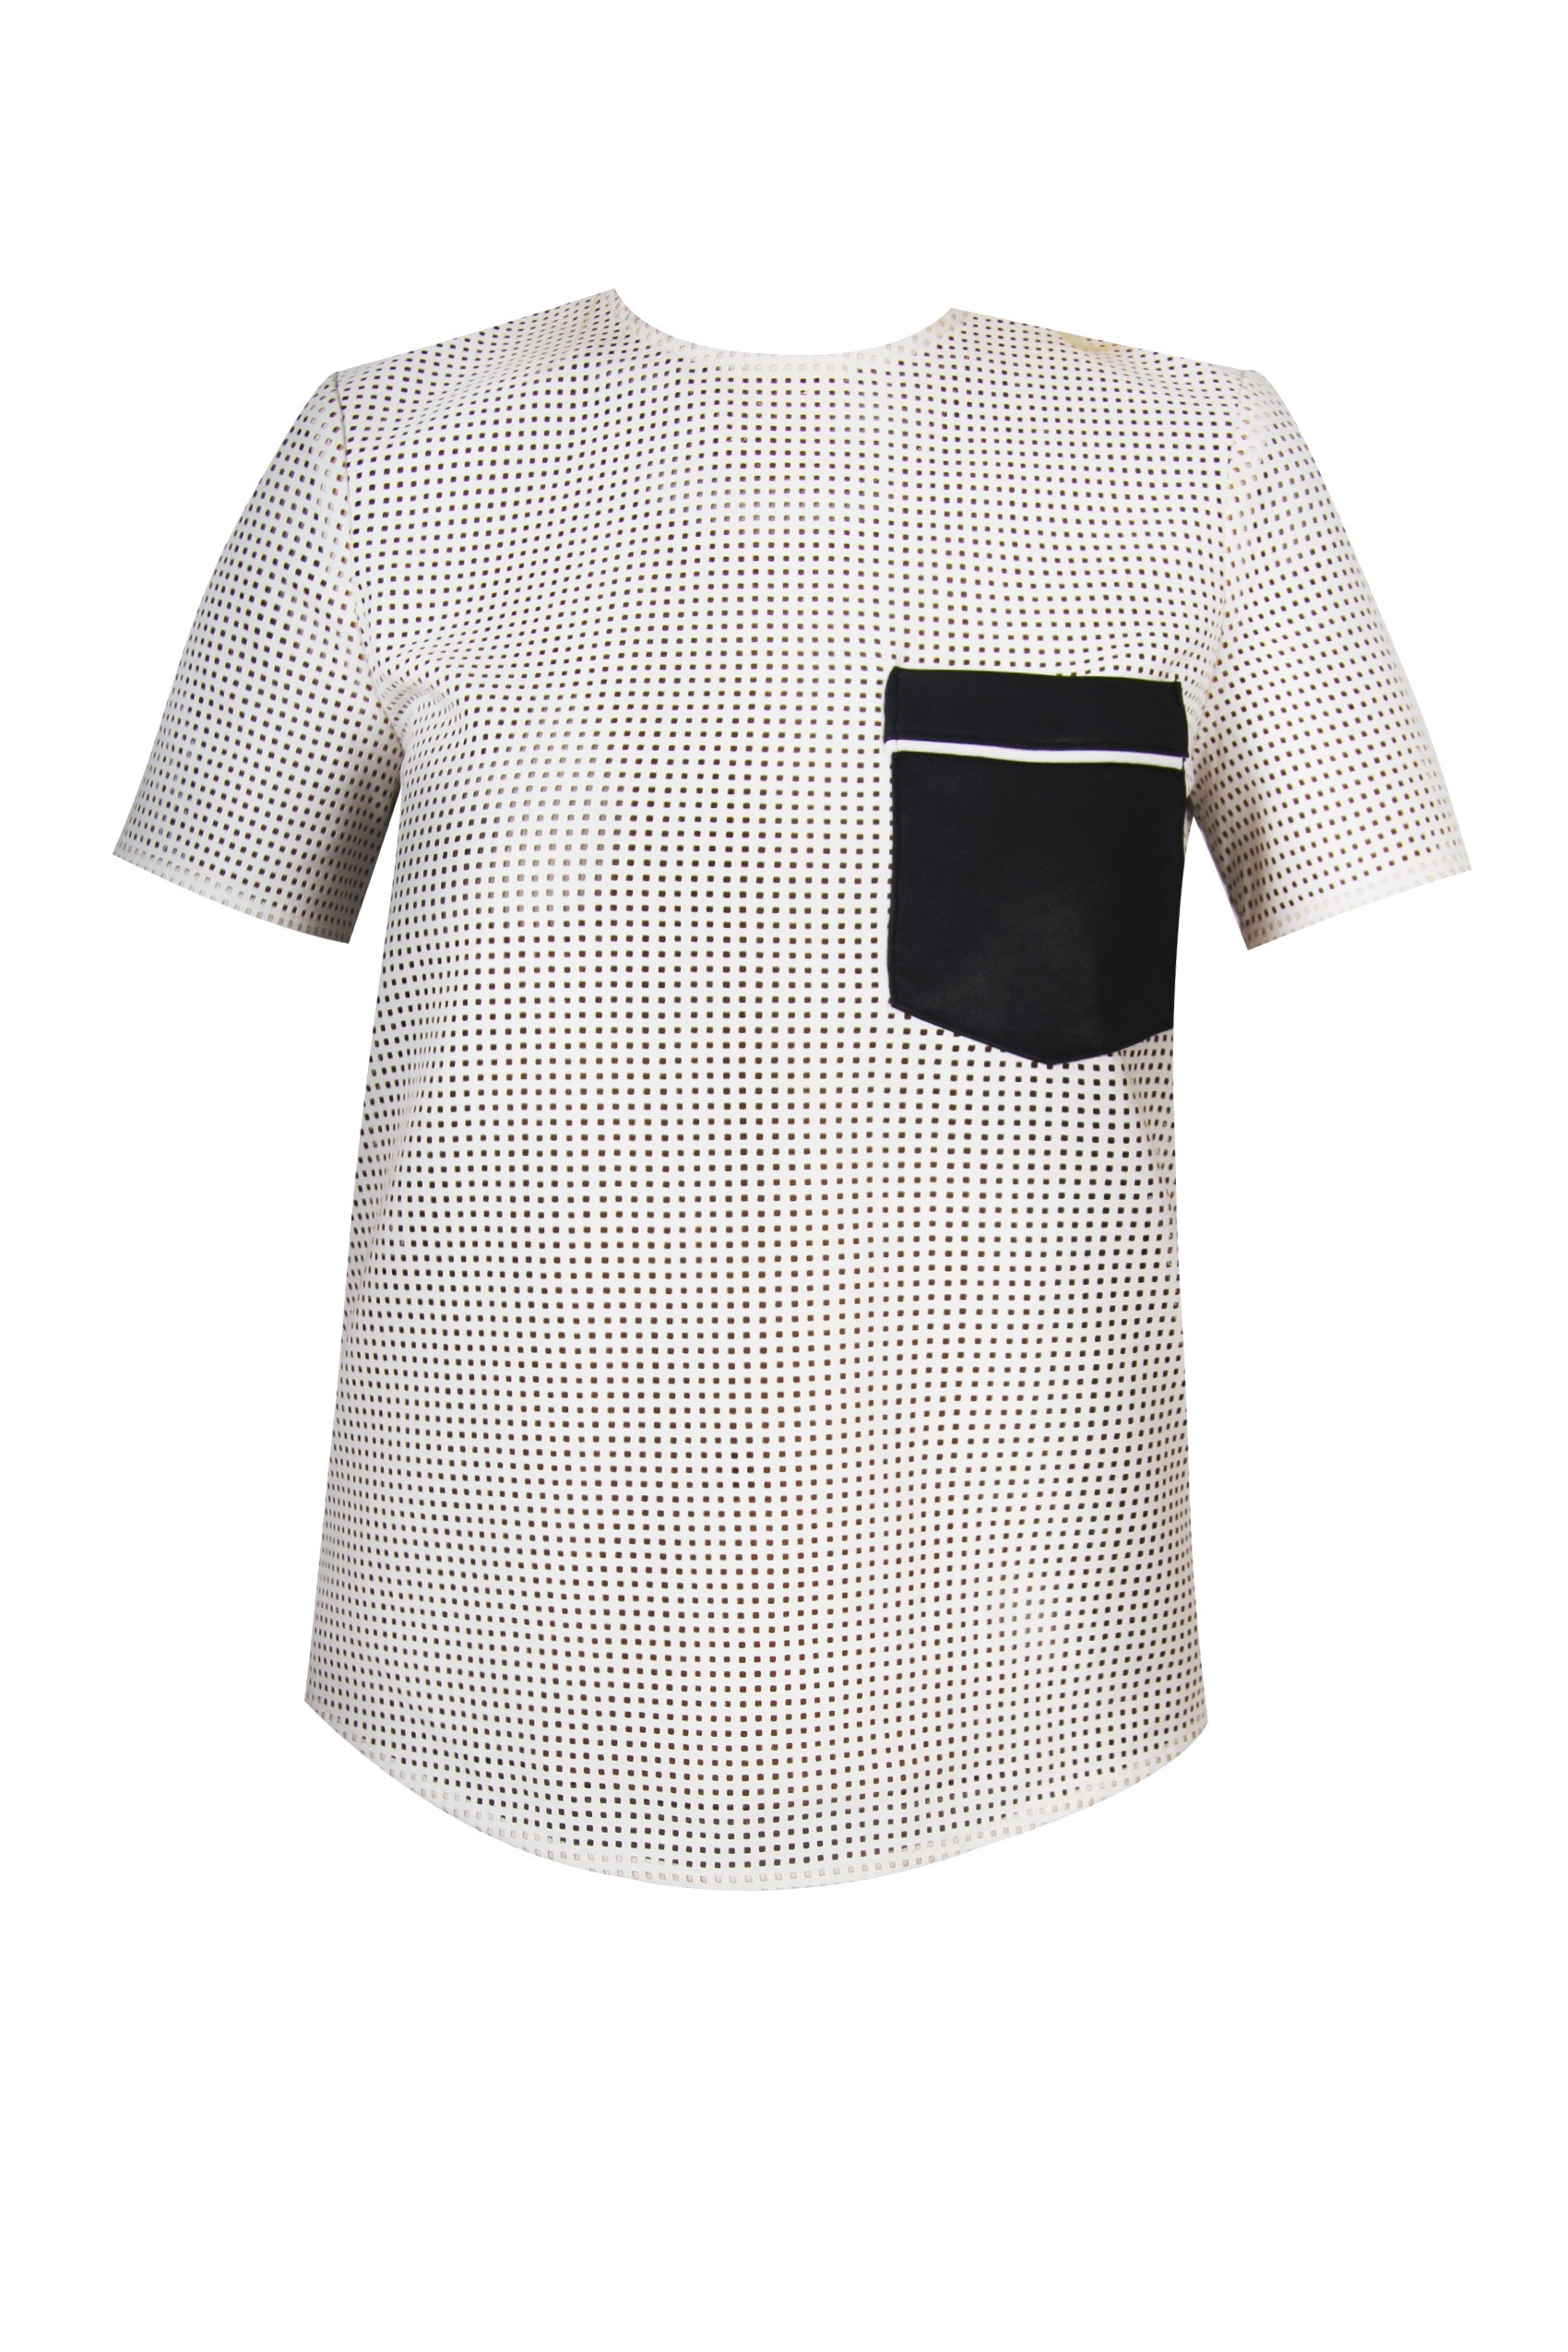 Structured White Tee by Self Portrait - Styligion.com